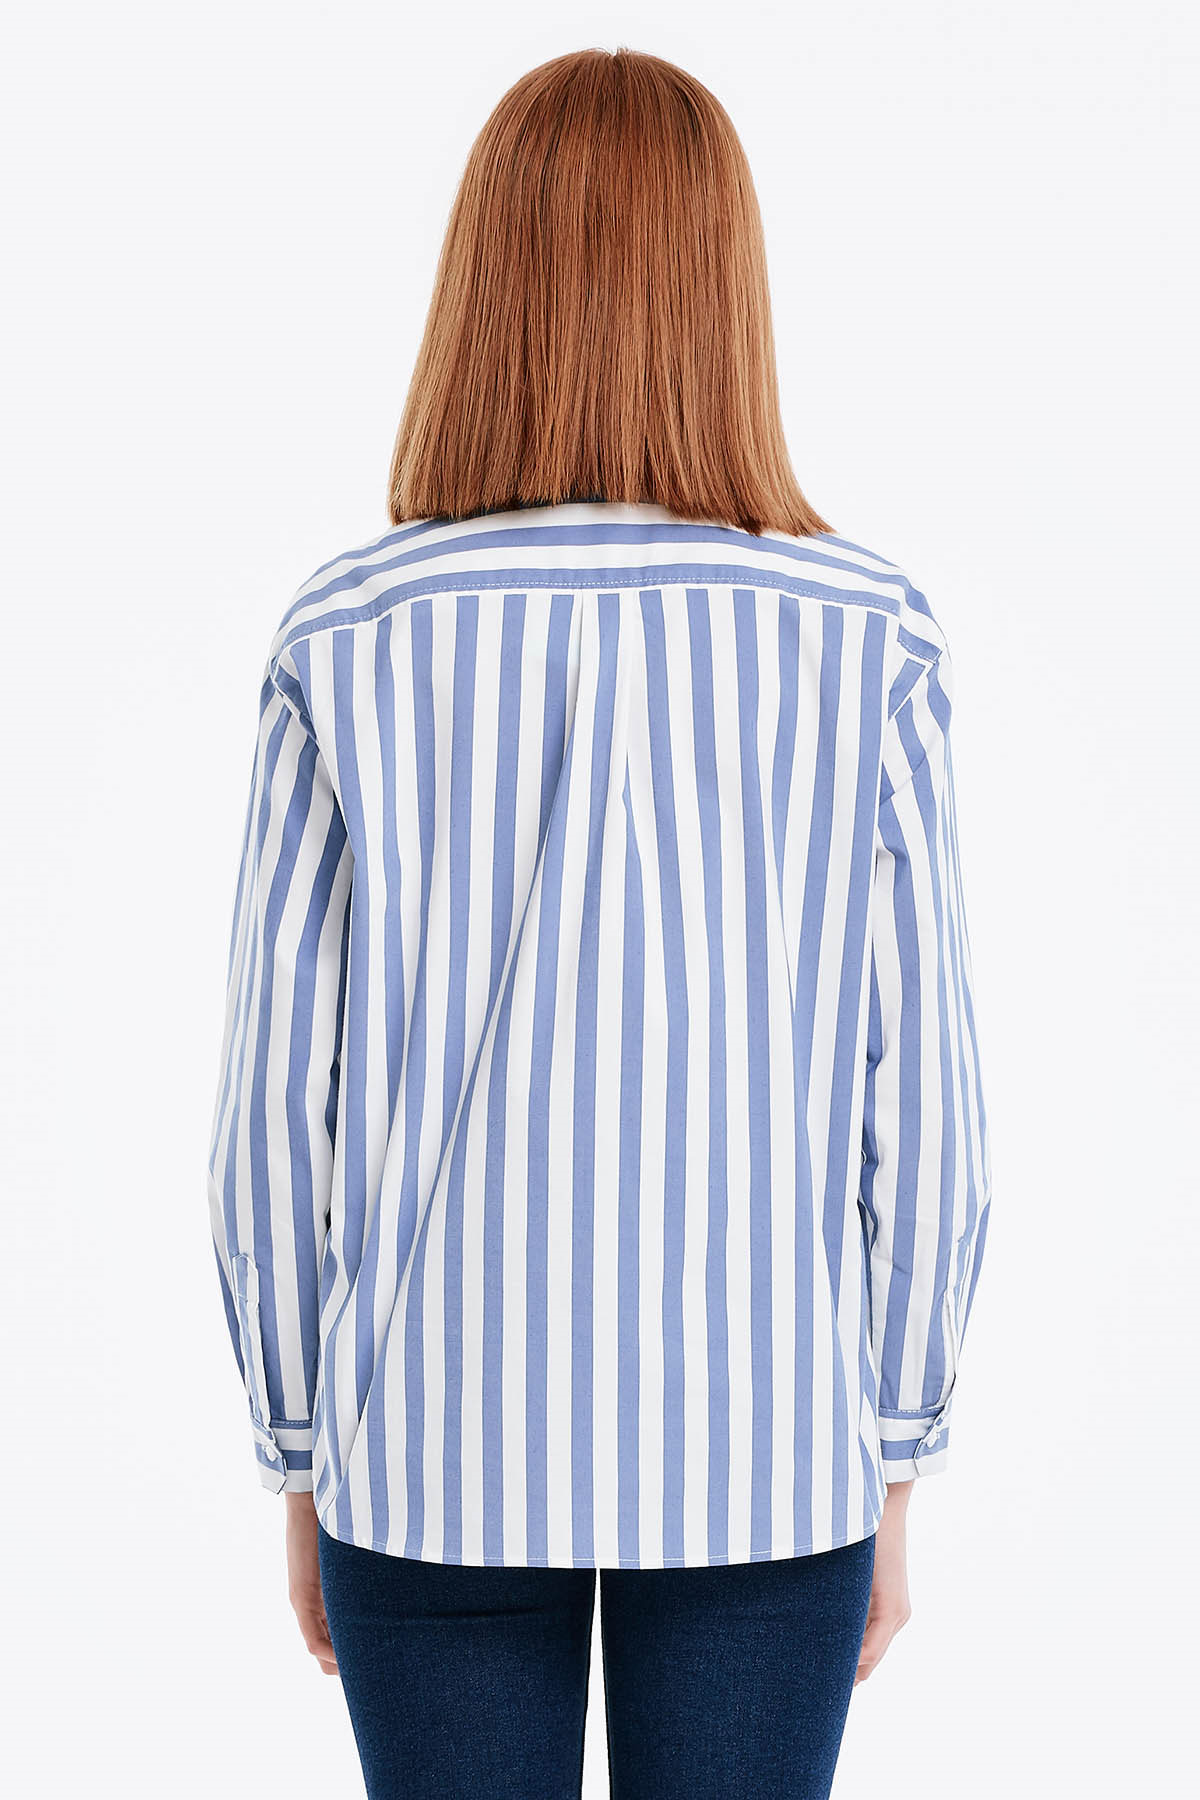 White shirt with blue stripes and a pocket buy in Kiev, price ...